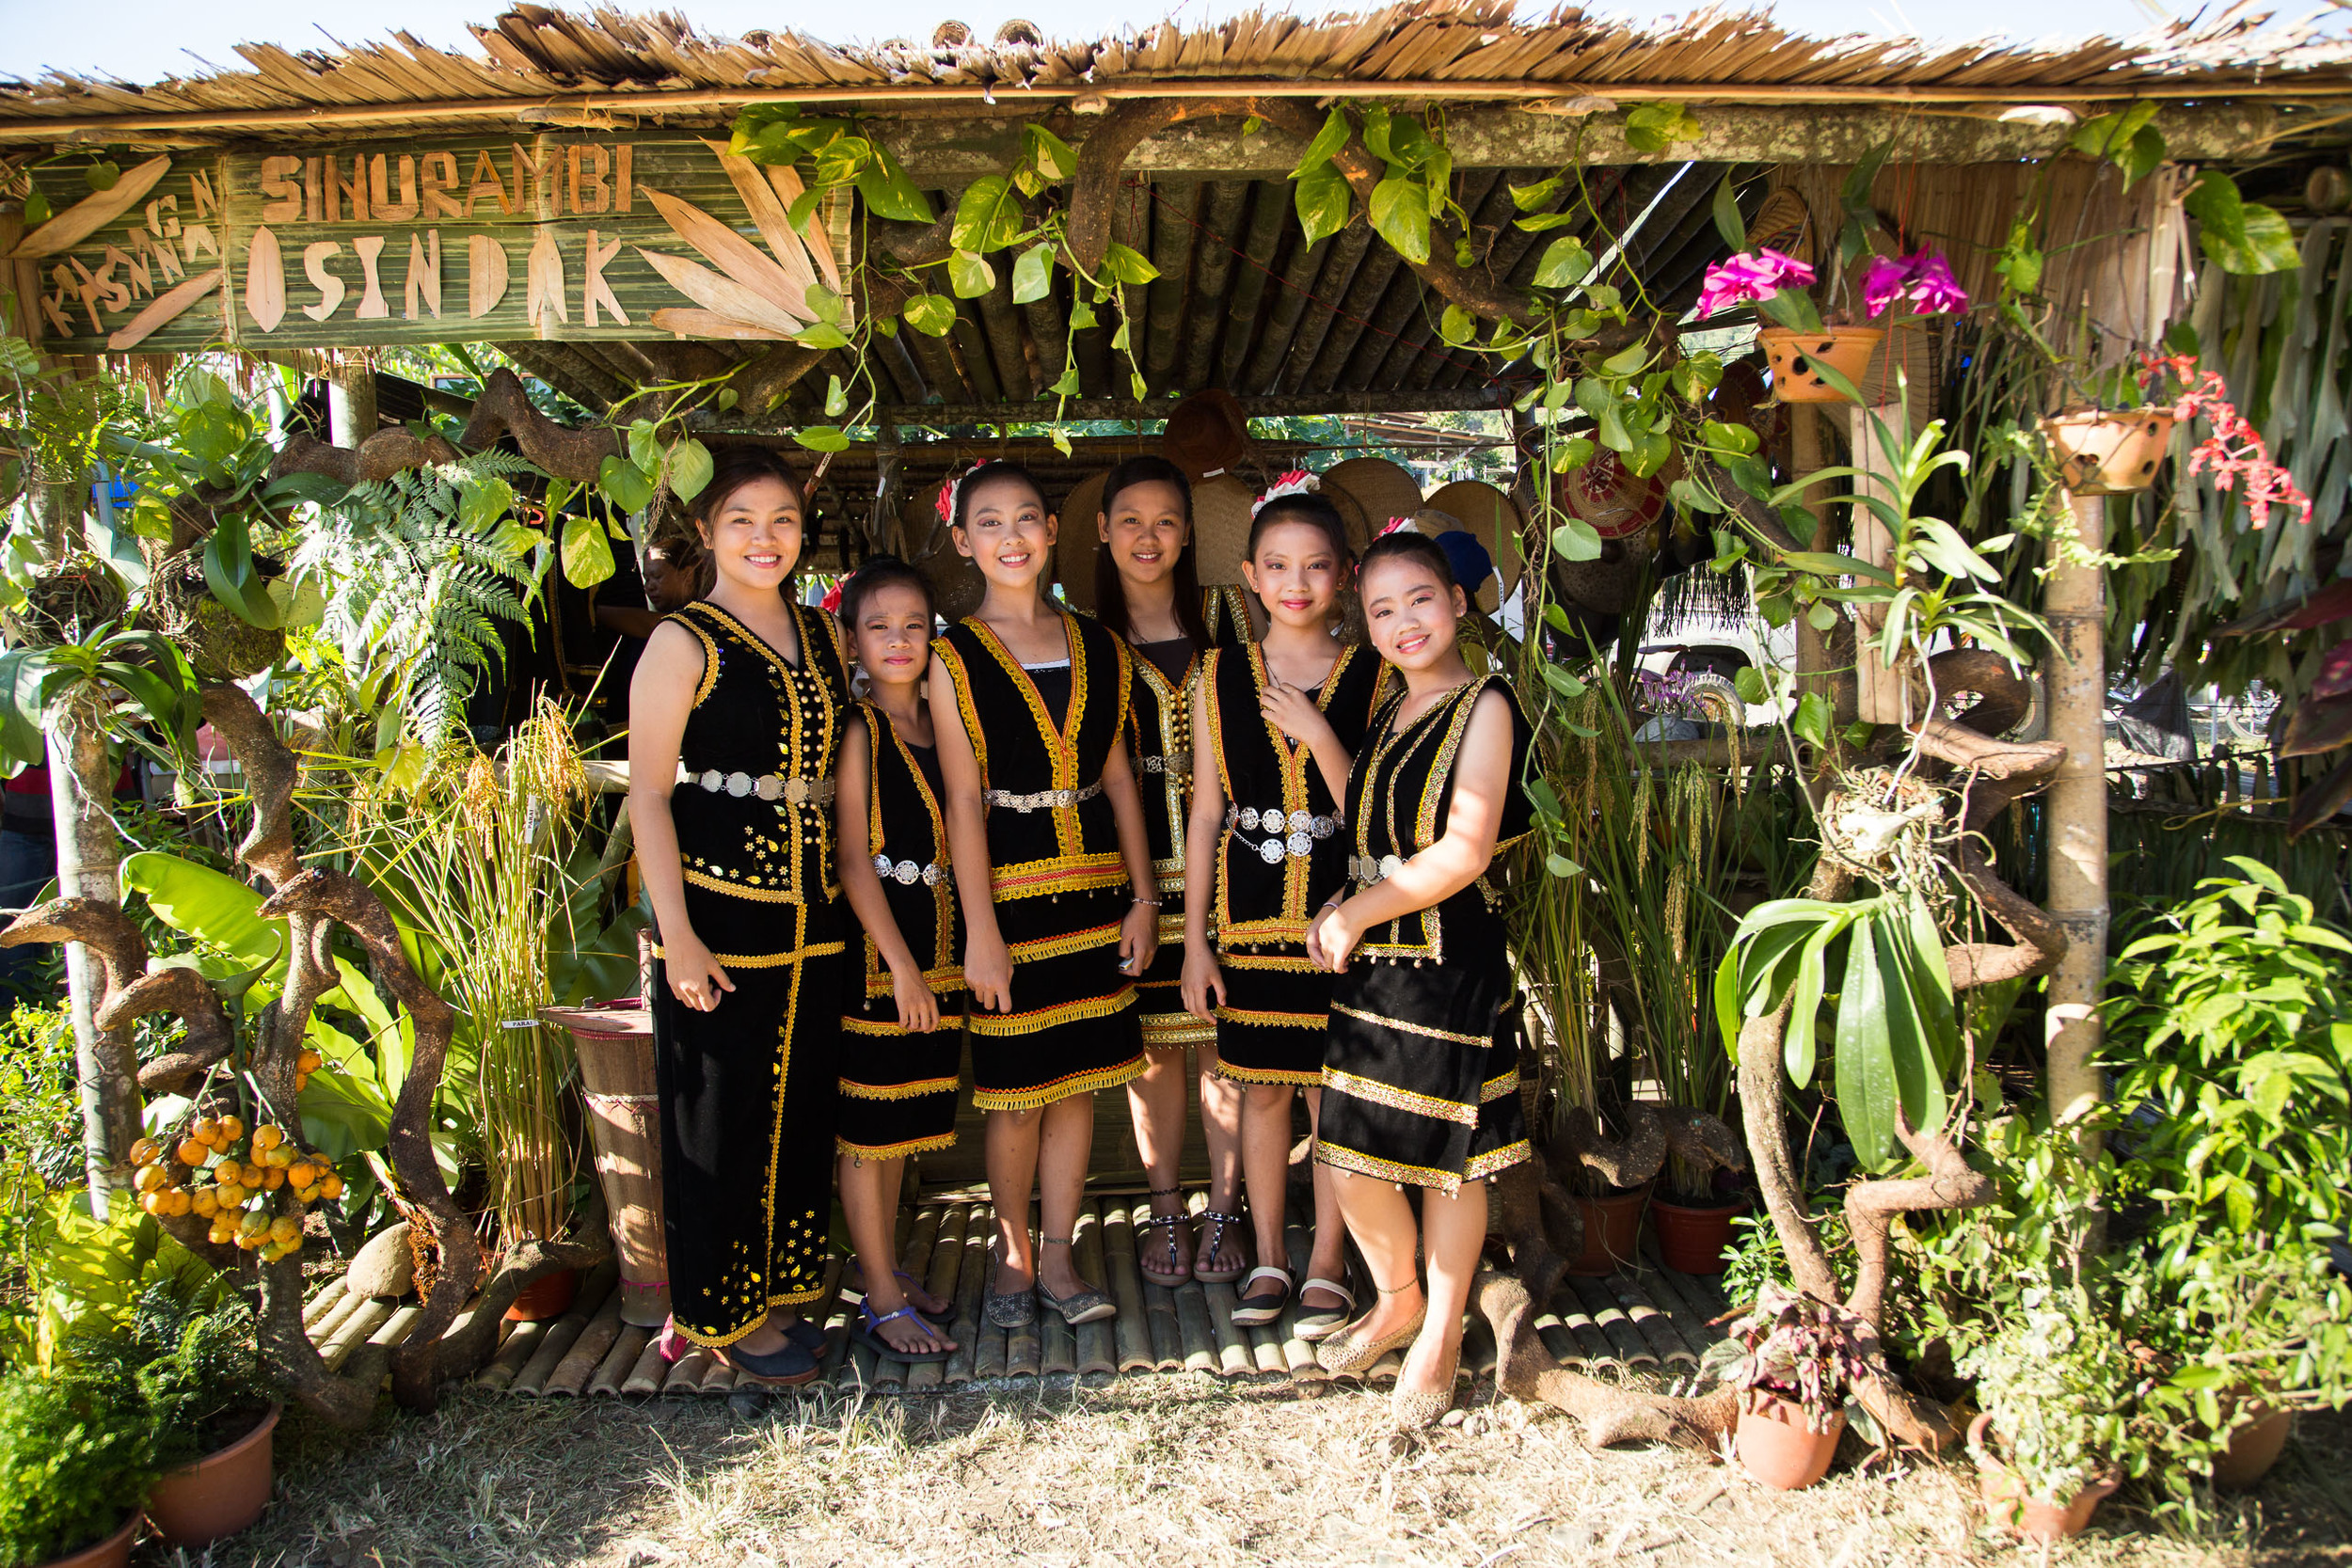 Young women posing at a hut. Credit: Jeremiah Sebastian Photography